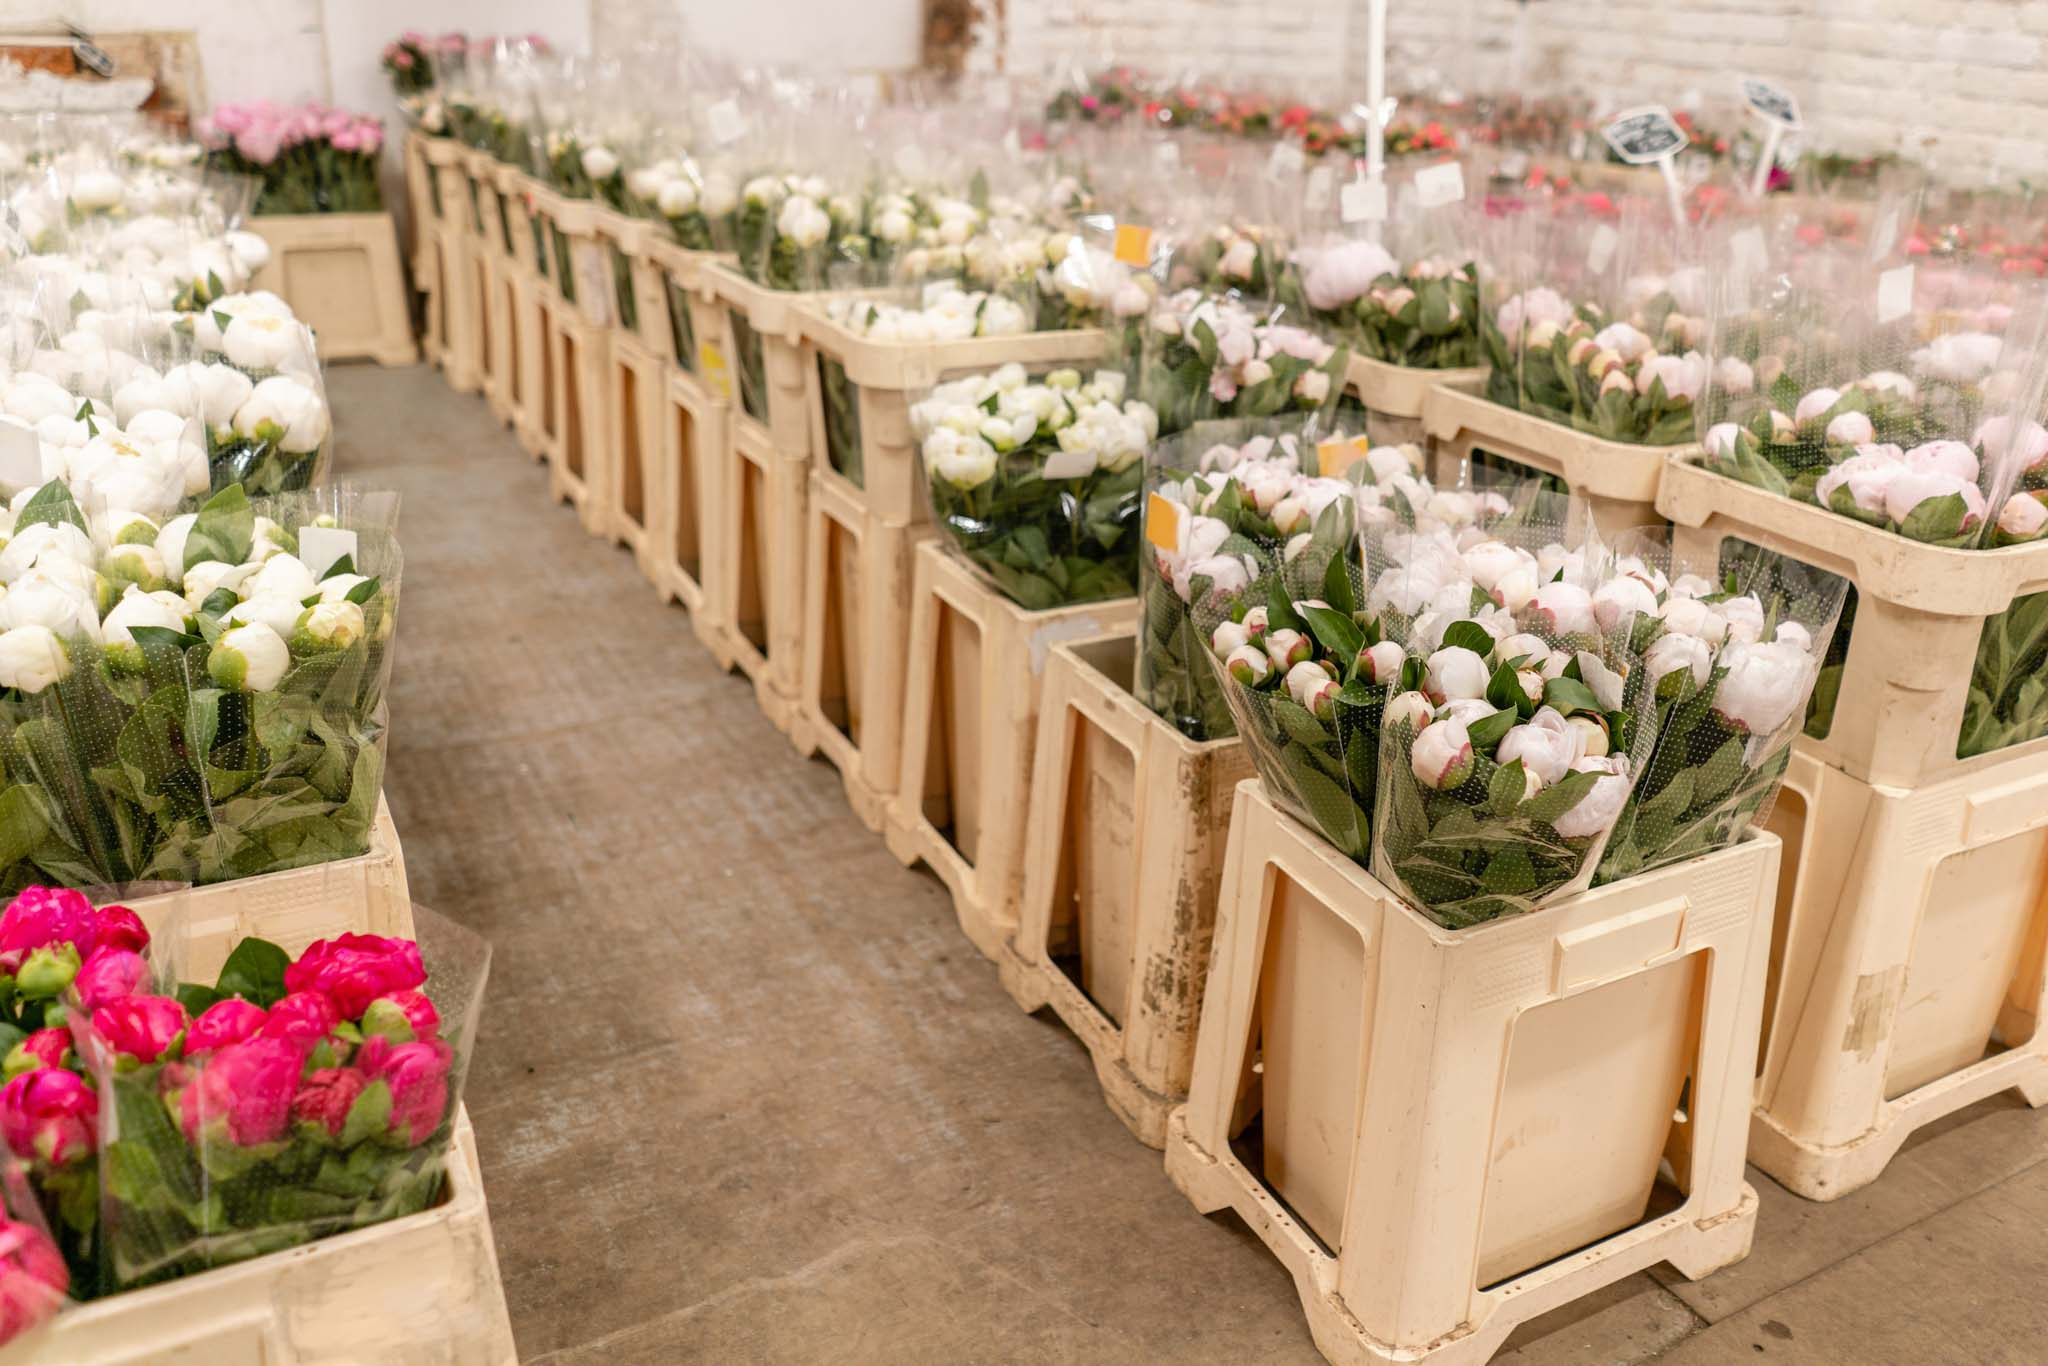 Wholesale flowers in crates